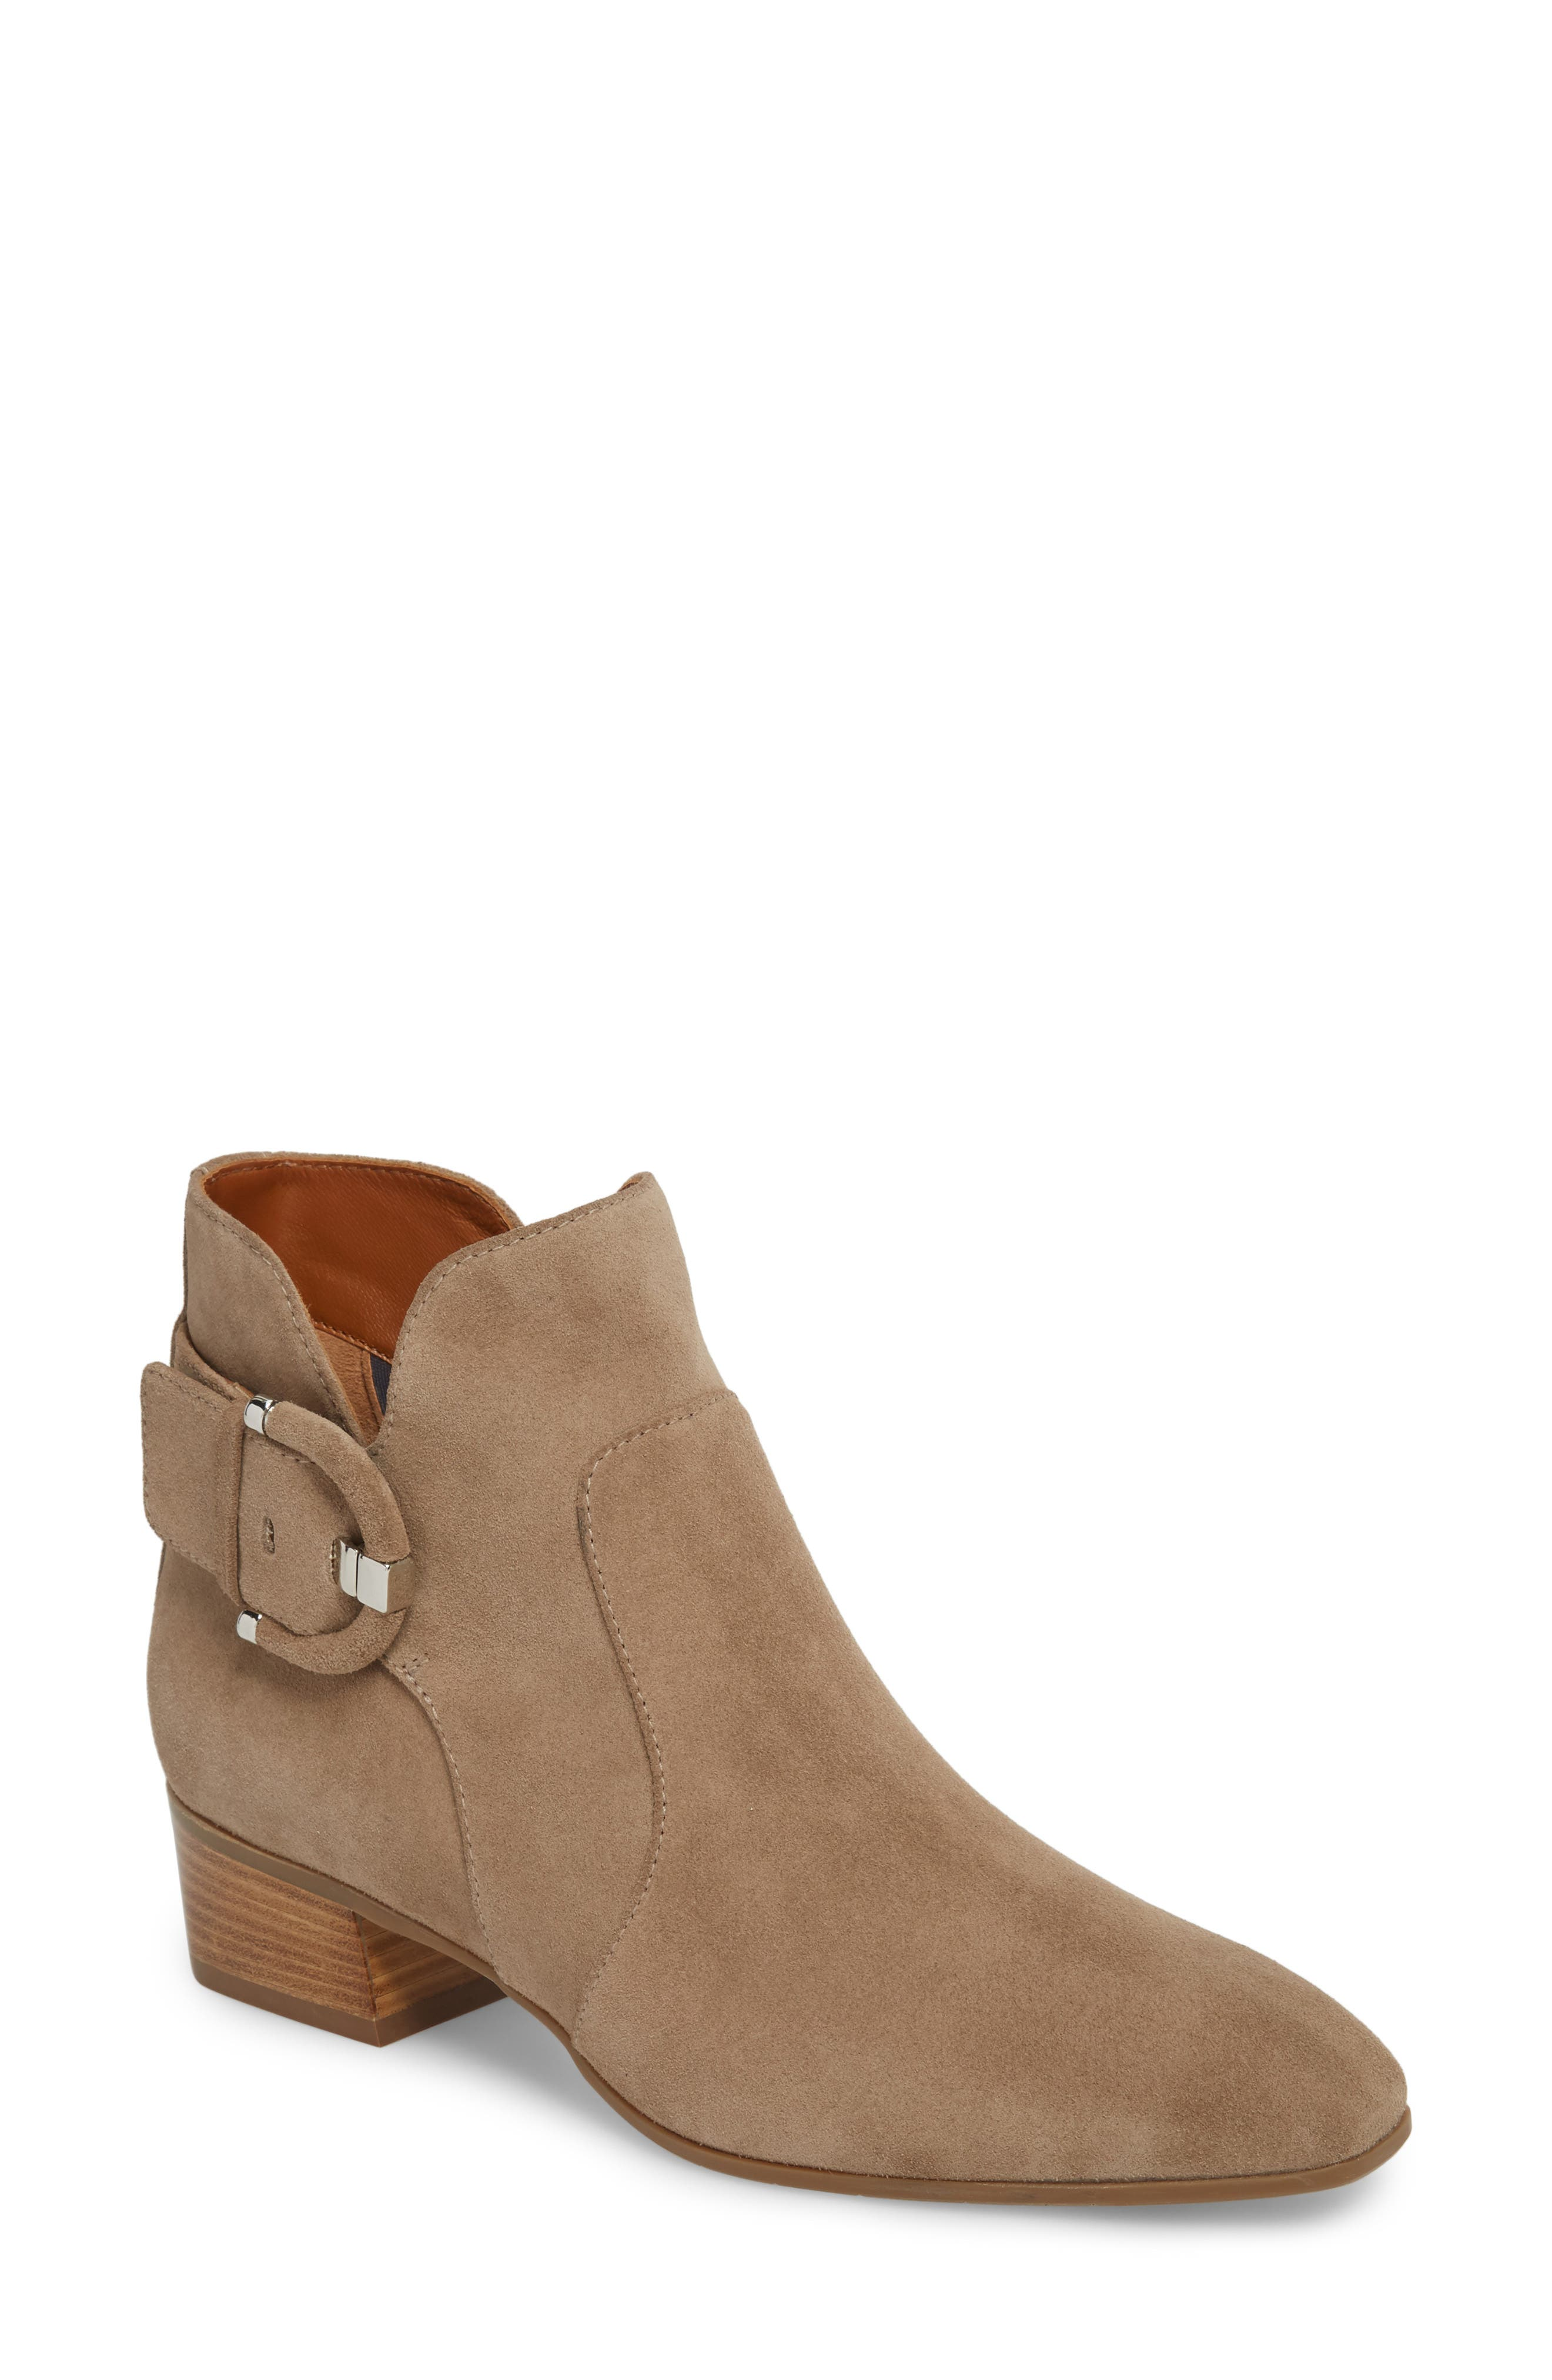 Fiamma Water Resistant Bootie,                         Main,                         color, TAUPE